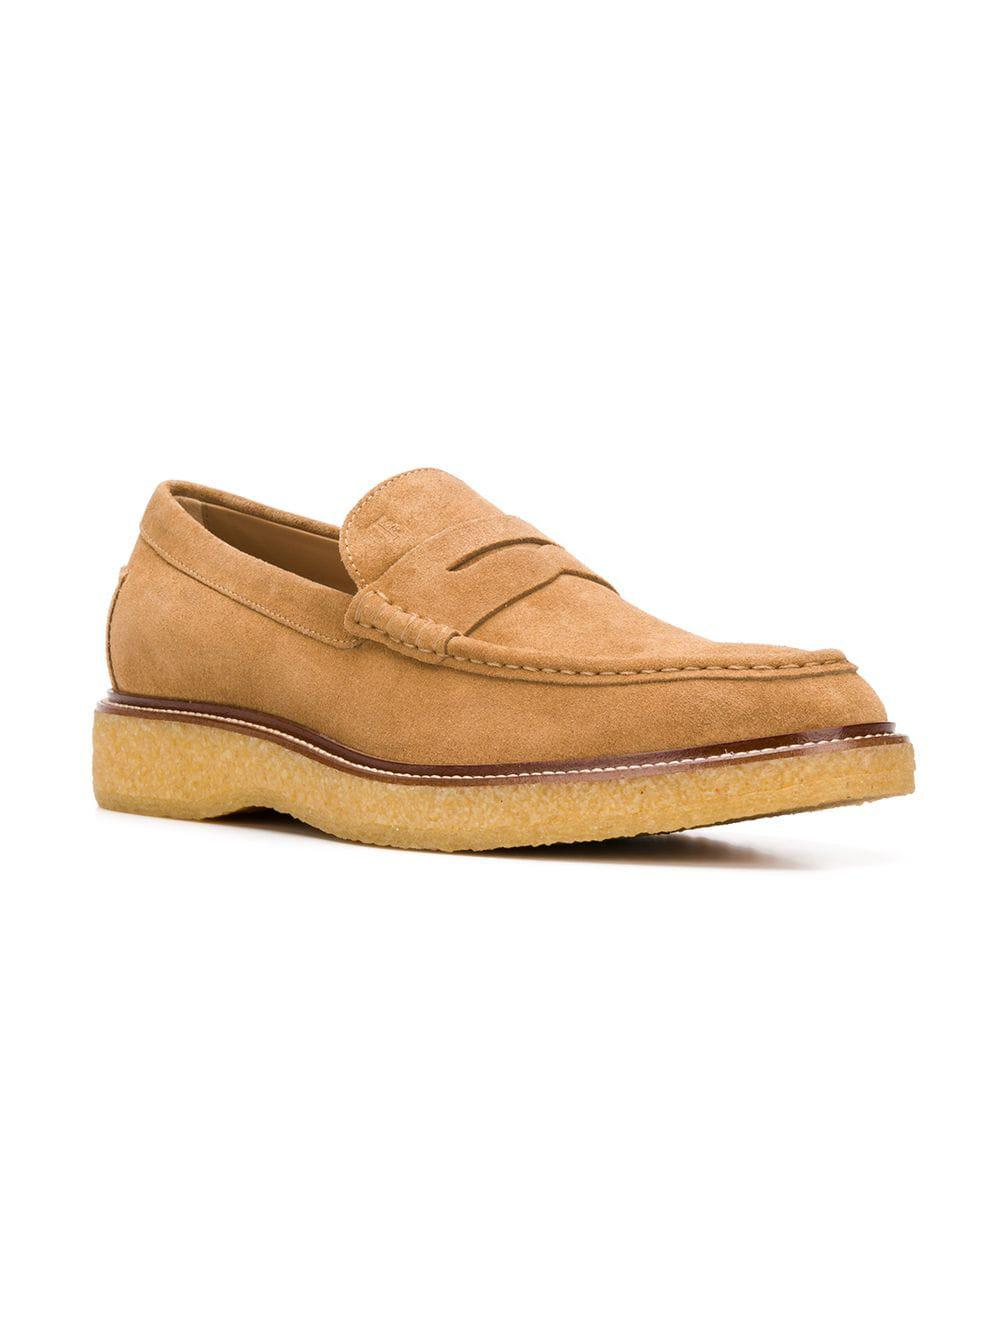 9c5ecdb6a96 Lyst - Tod s Rubber Sole Penny Loafers in Natural for Men